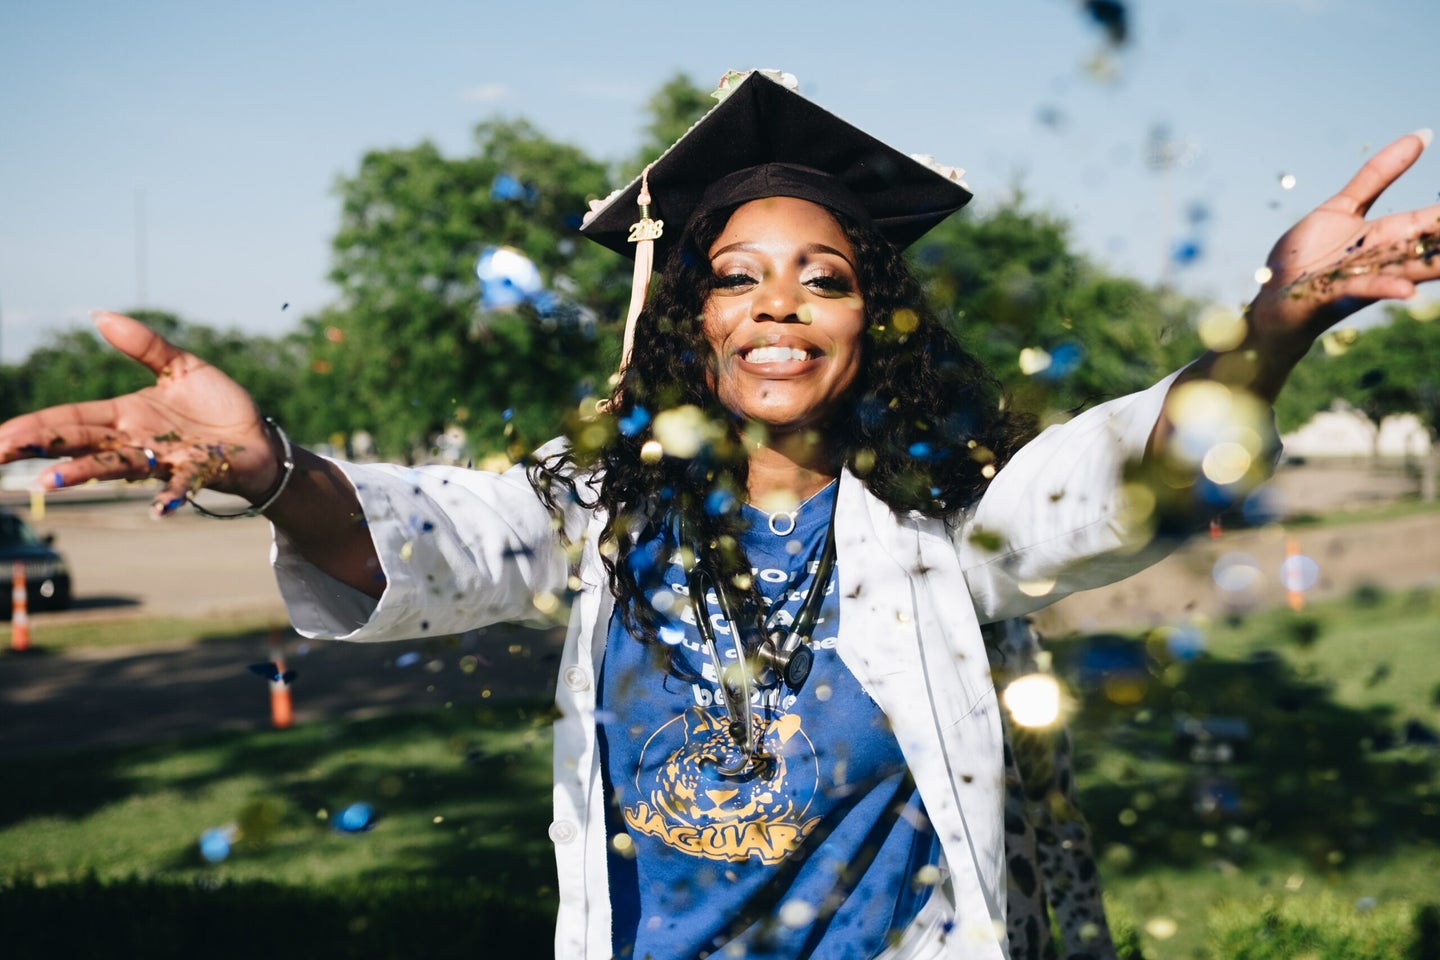 woman throwing glitter in front of herself wearing a graduation cap